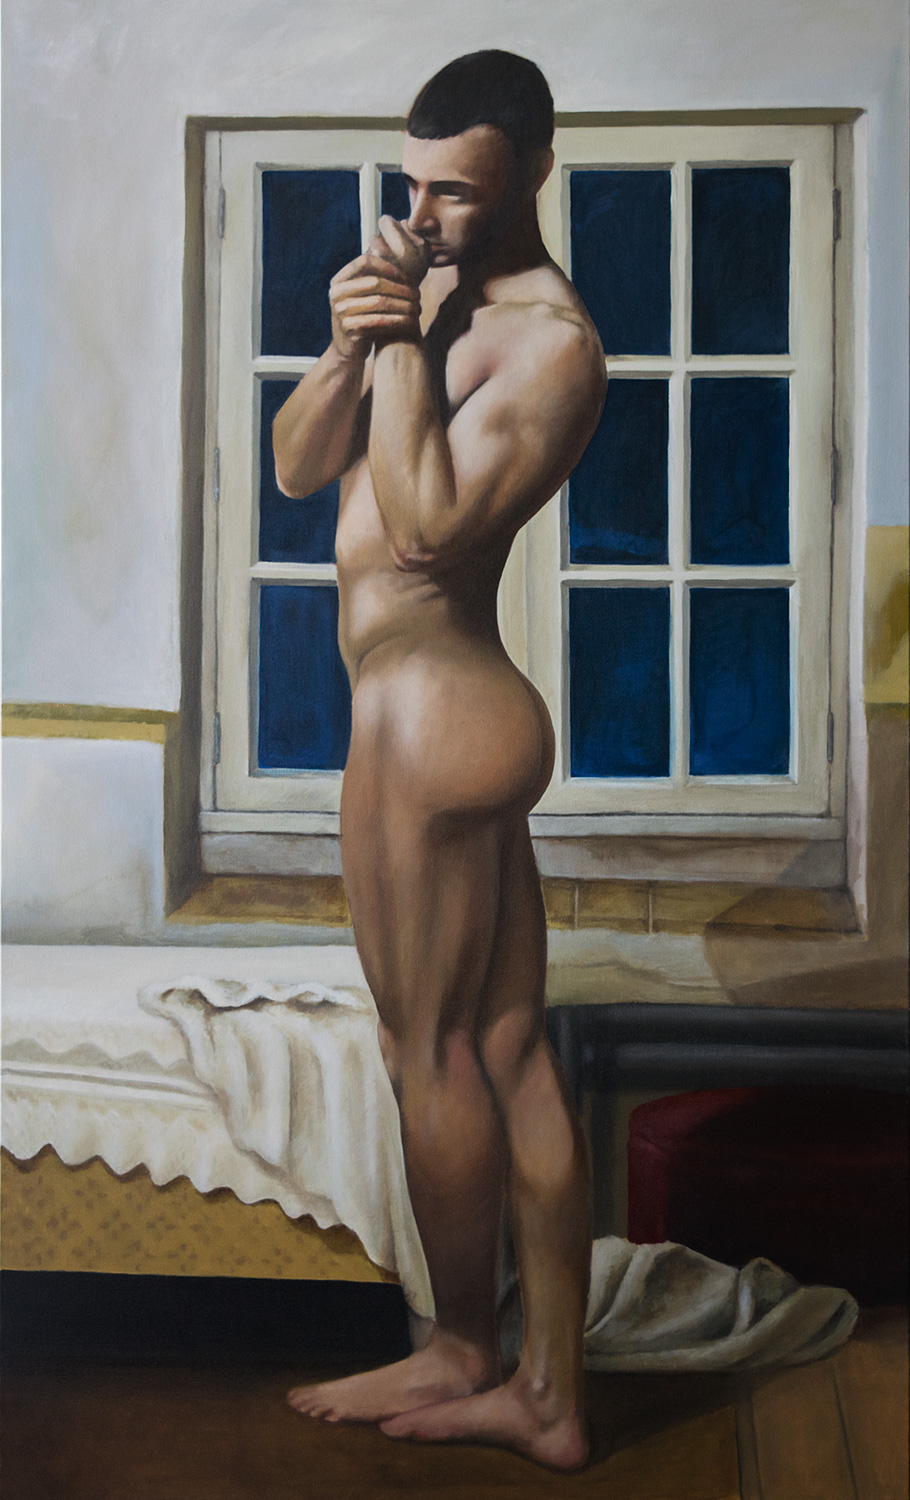 2017, Emmanuel.   Oil on canvas, 36 x 60 in. (92 x 153cm.)